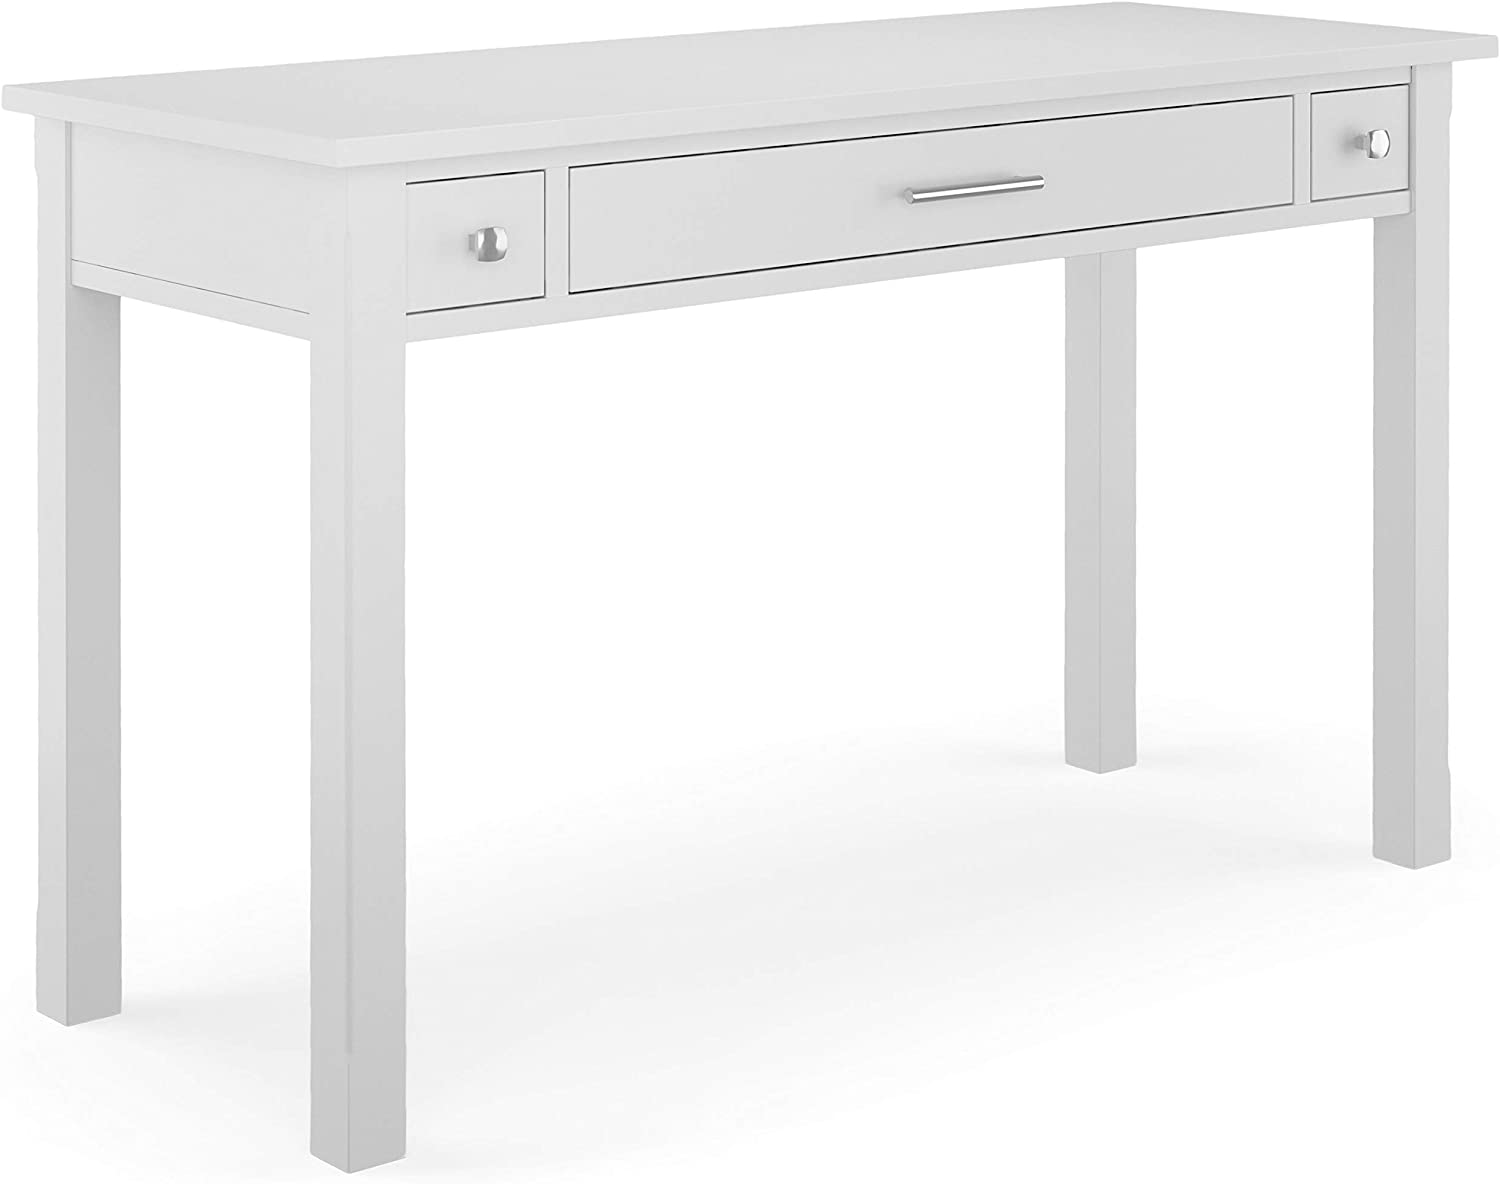 SIMPLIHOME Avalon SOLID WOOD Contemporary Modern 47 inch Wide Home Office Desk, Writing Table, Workstation, Study Table Furniture in White with 2 Drawerss